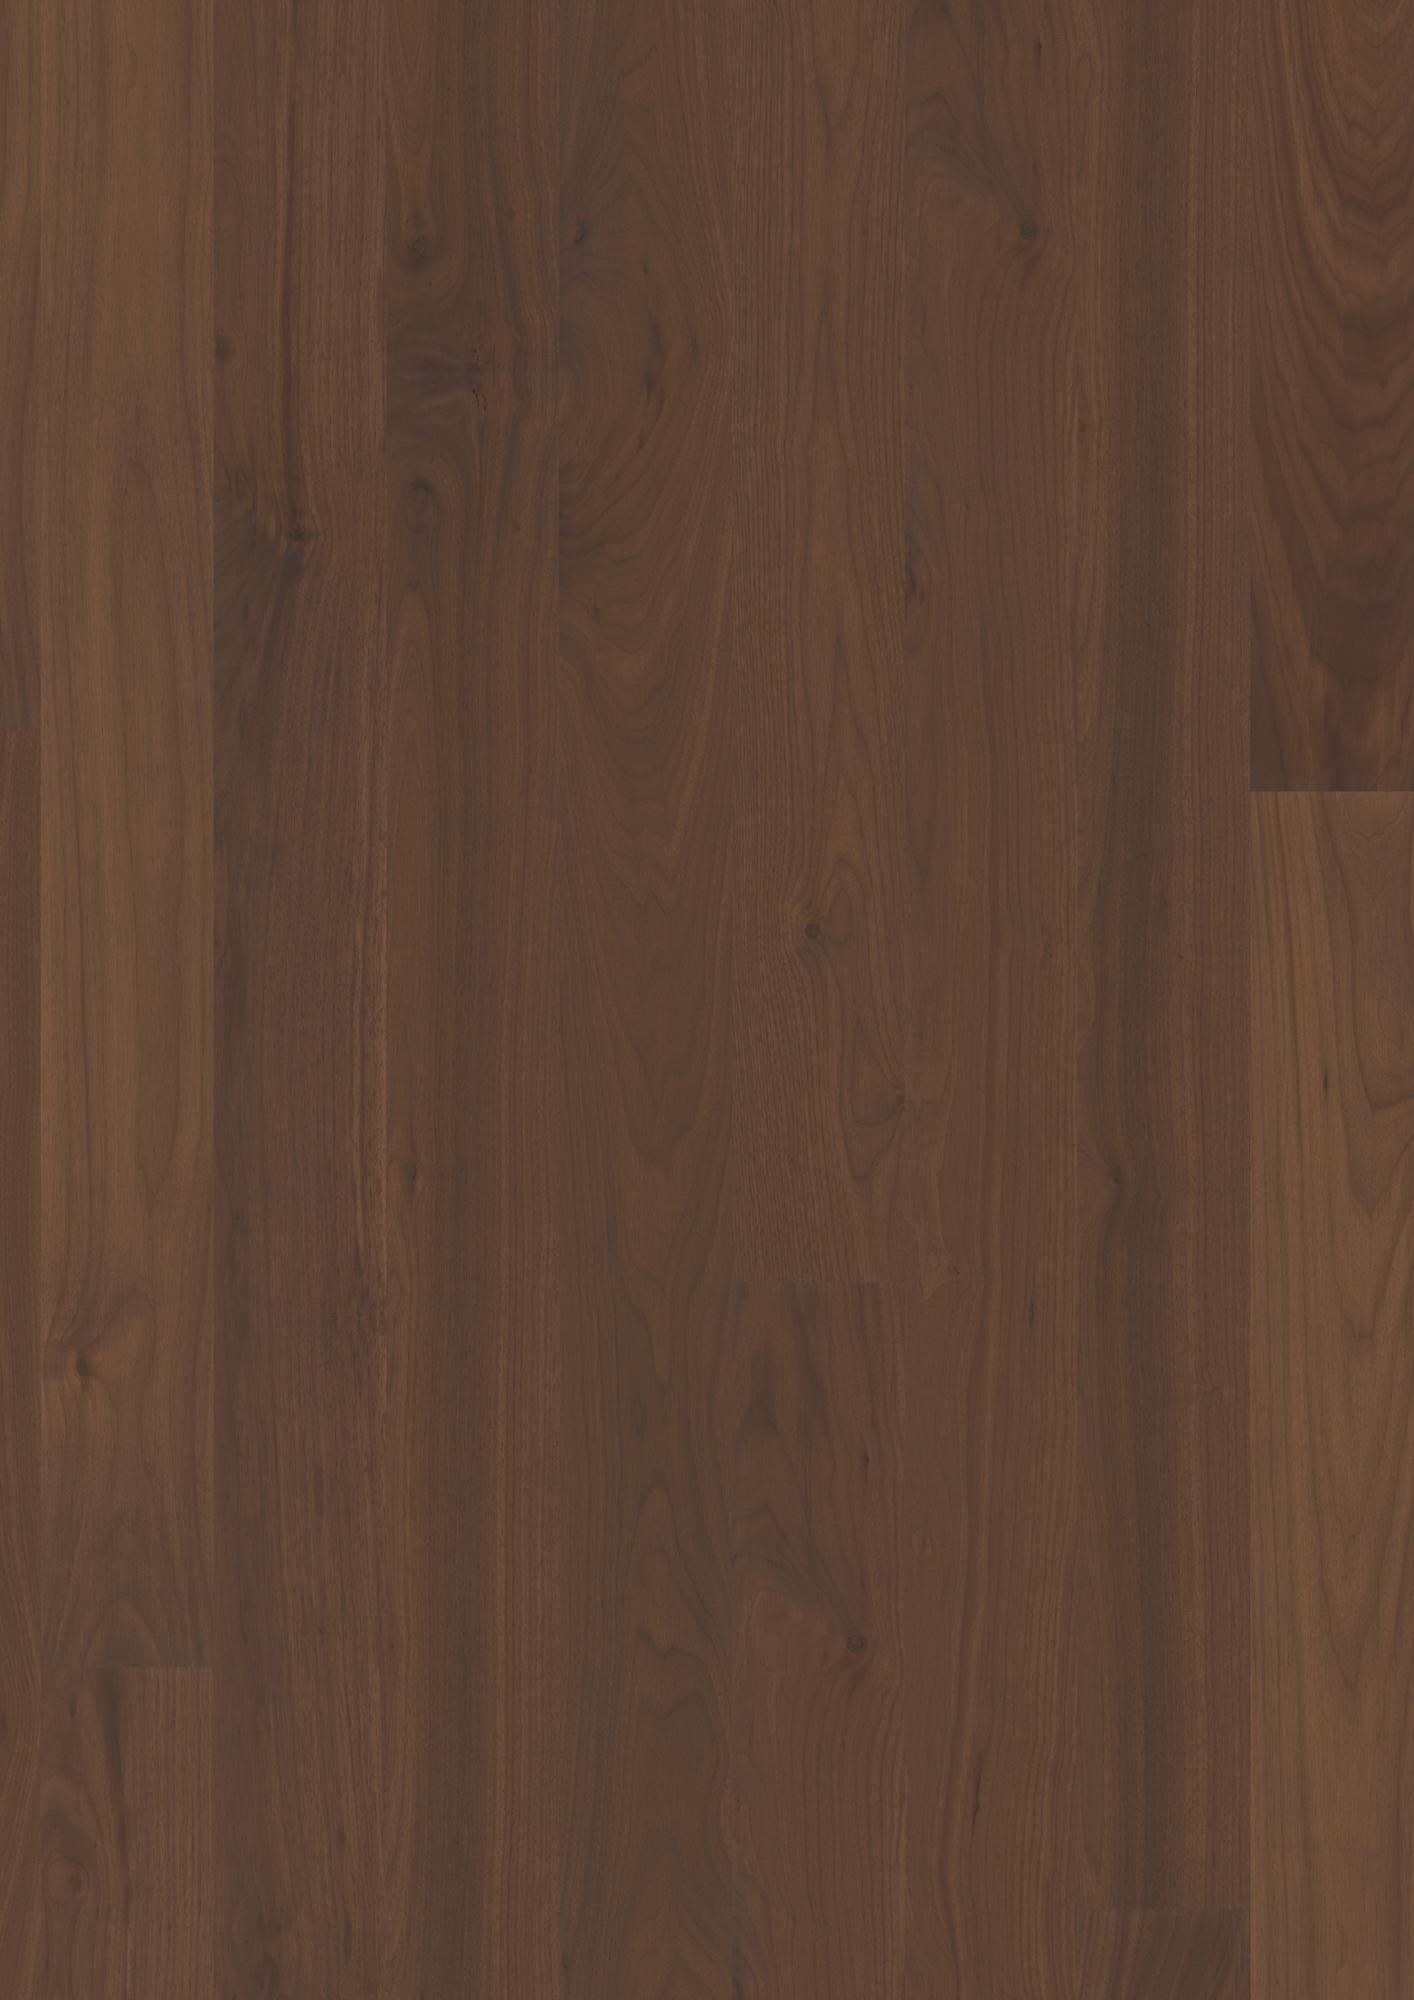 Walnut am. Andante, Live Matt lacquer, Plank 138, 14x138x2200mm